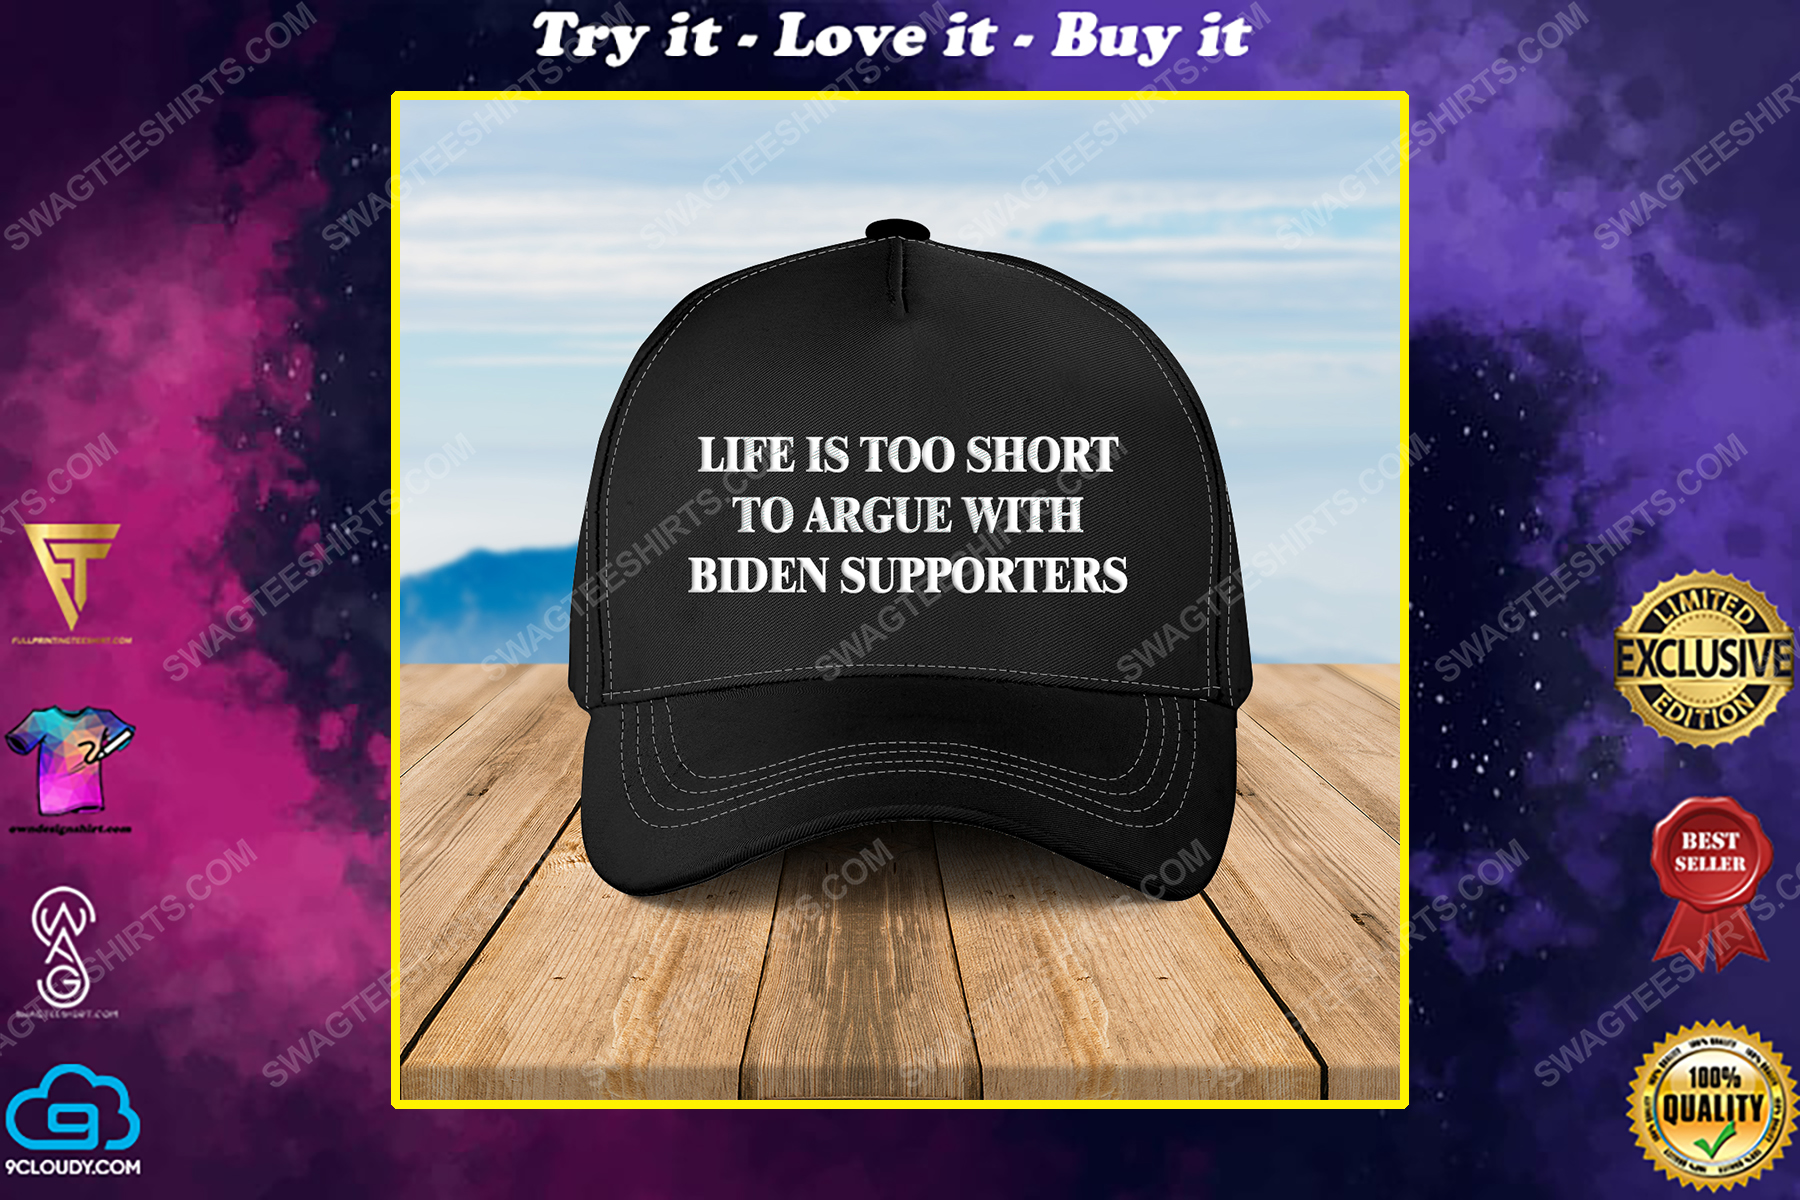 Life is too short to argue with biden supporters full print classic hat